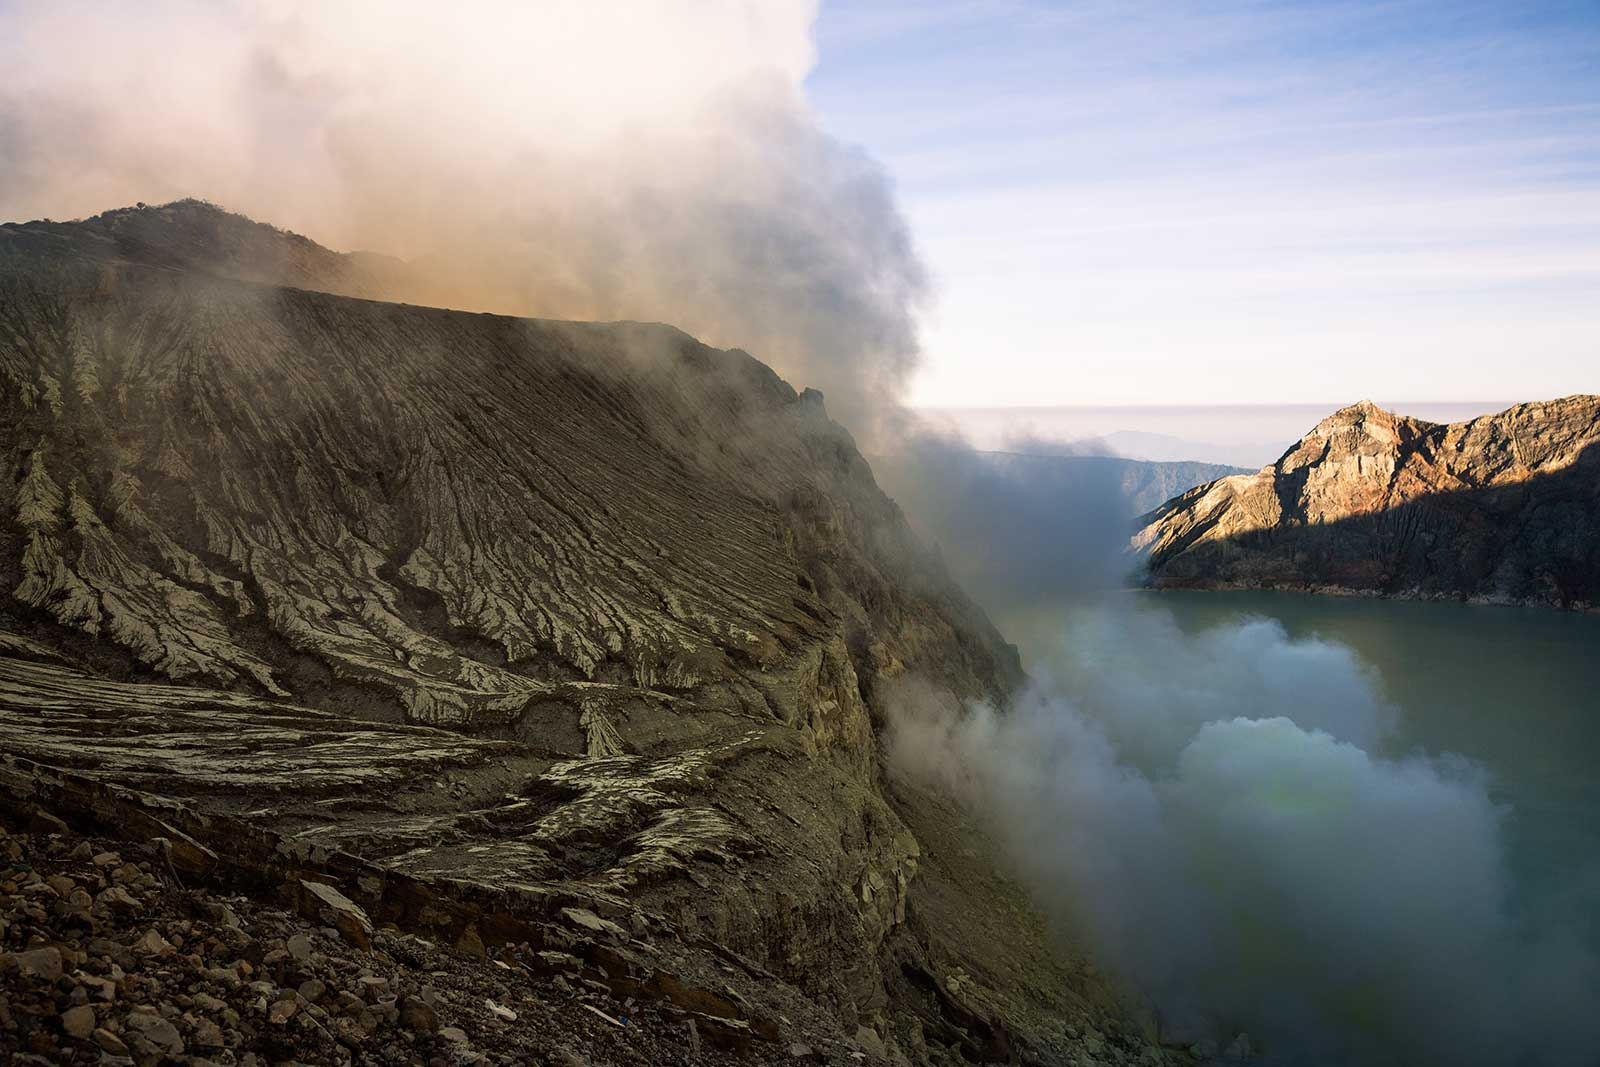 The miners inevitably inhale the toxic fumes at Kawah Ijen crater.